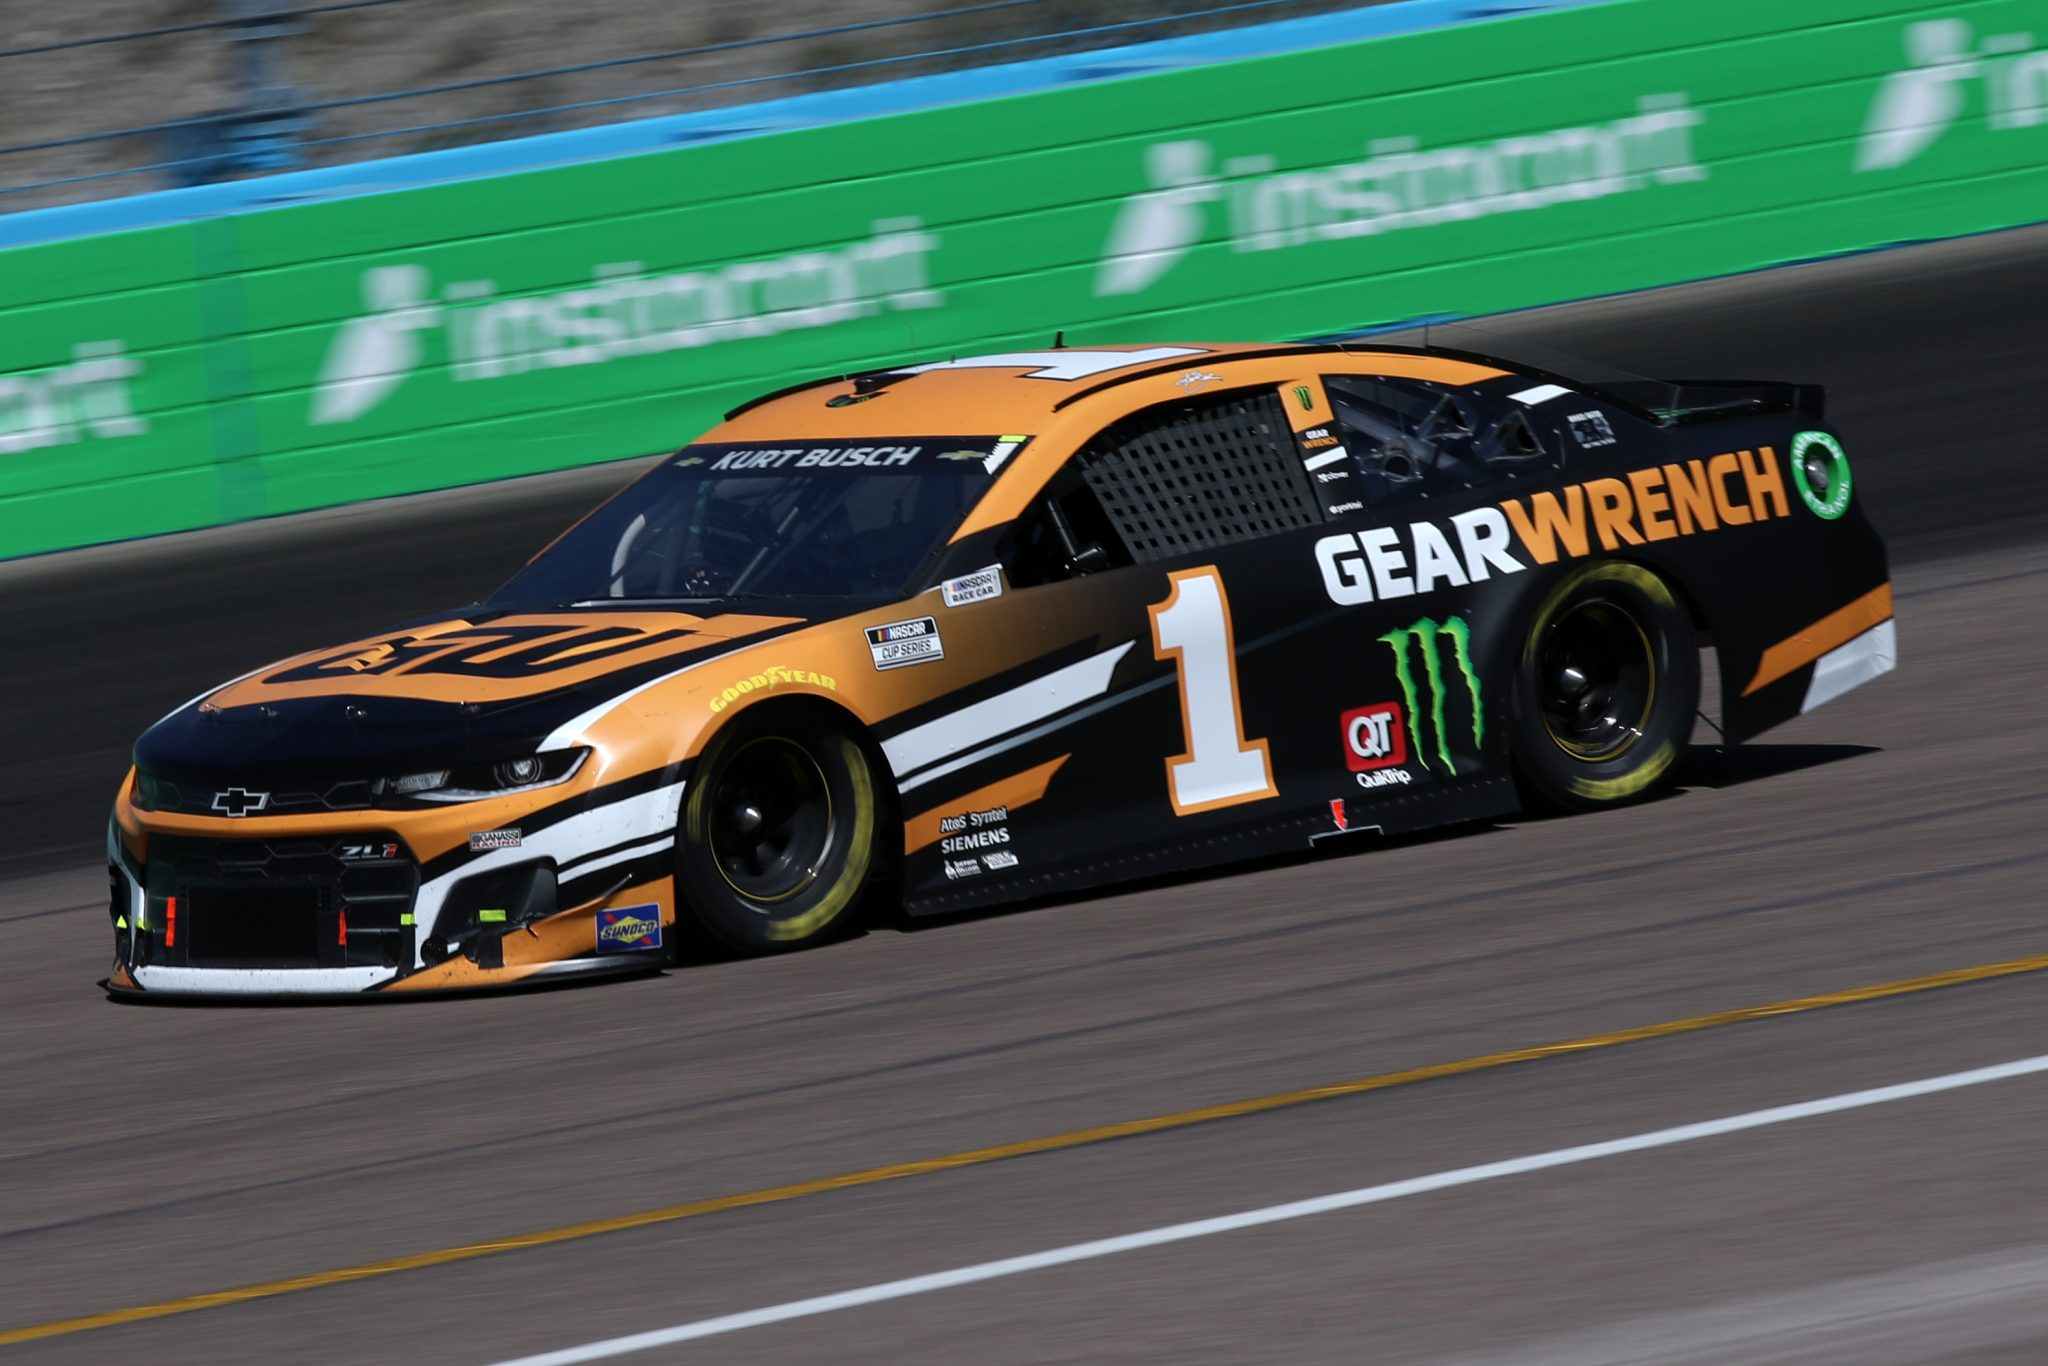 AVONDALE, ARIZONA - MARCH 14: Kurt Busch, driver of the #1 Gearwrench Chevrolet, drives during the NASCAR Cup Series Instacart 500 at Phoenix Raceway on March 14, 2021 in Avondale, Arizona. (Photo by Sean Gardner/Getty Images) | Getty Images